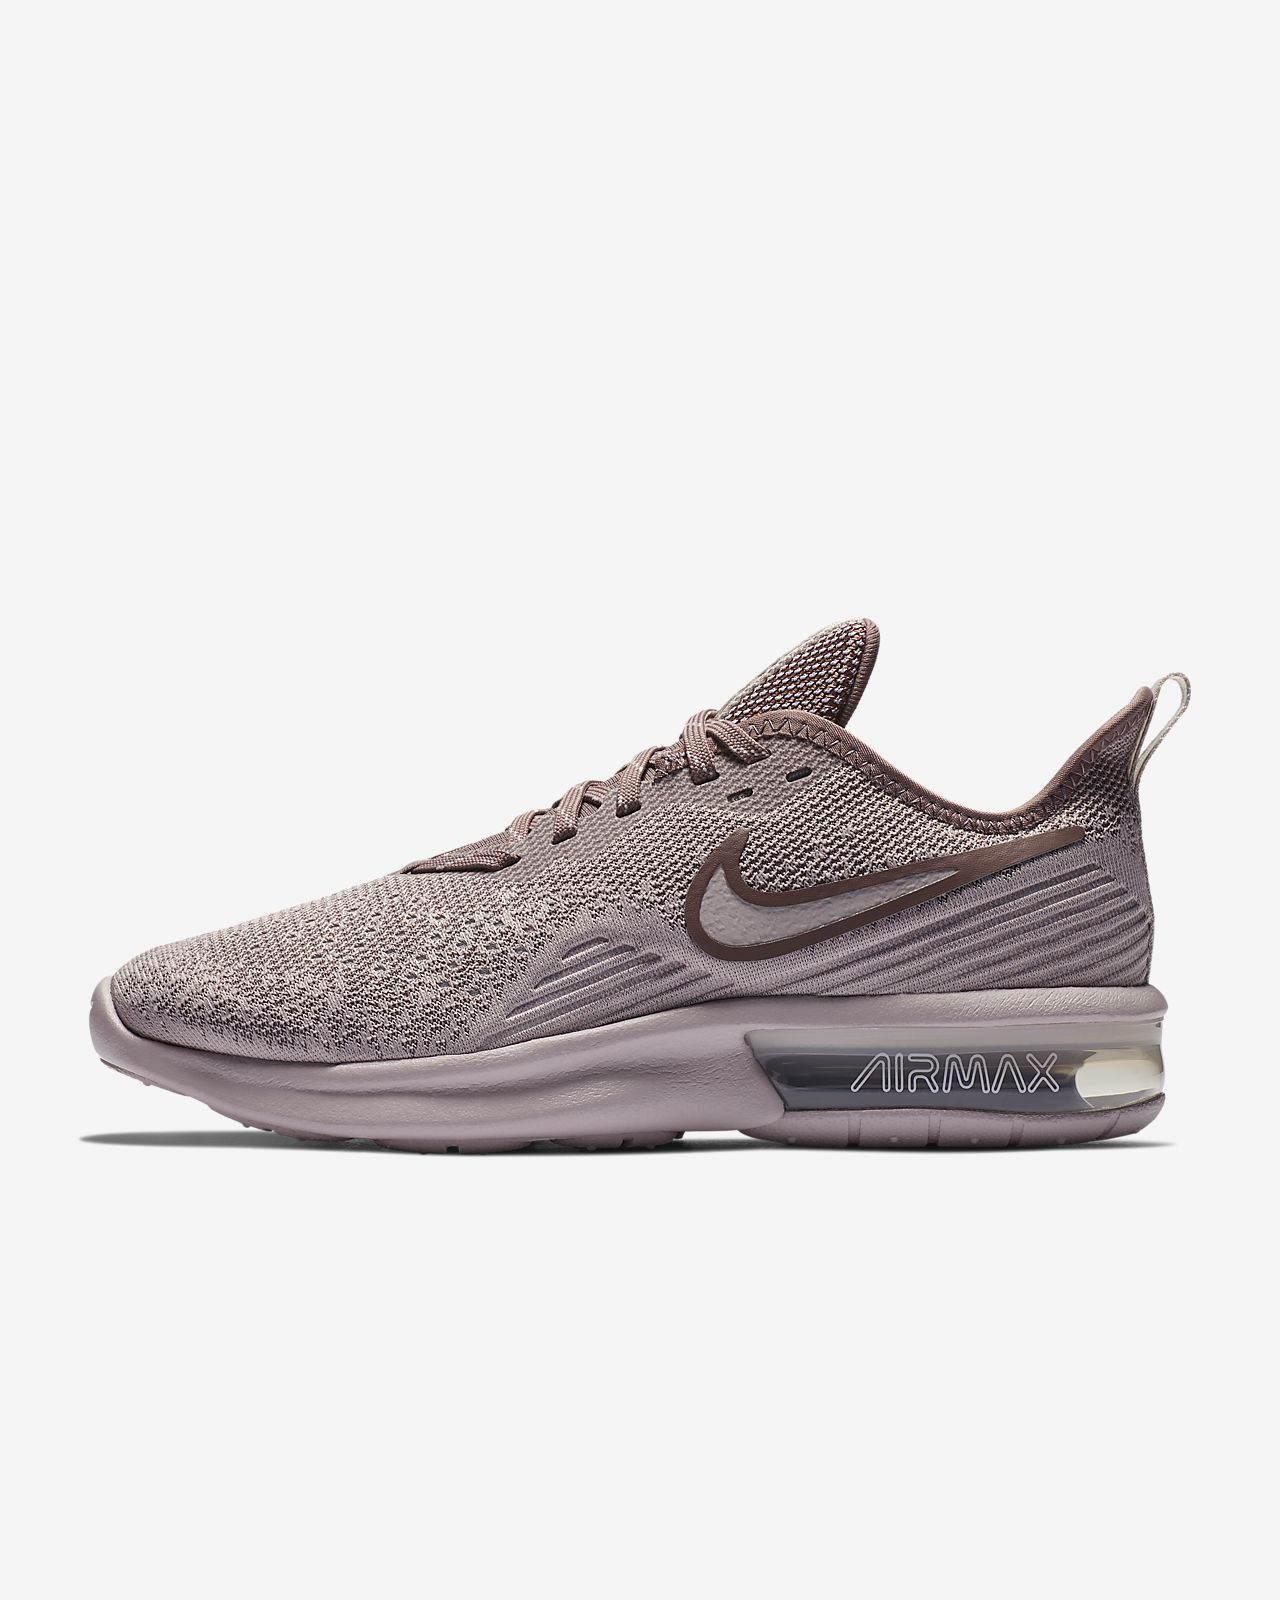 separation shoes c9abd 6991a ... Chaussure Nike Air Max Sequent 4 pour Femme